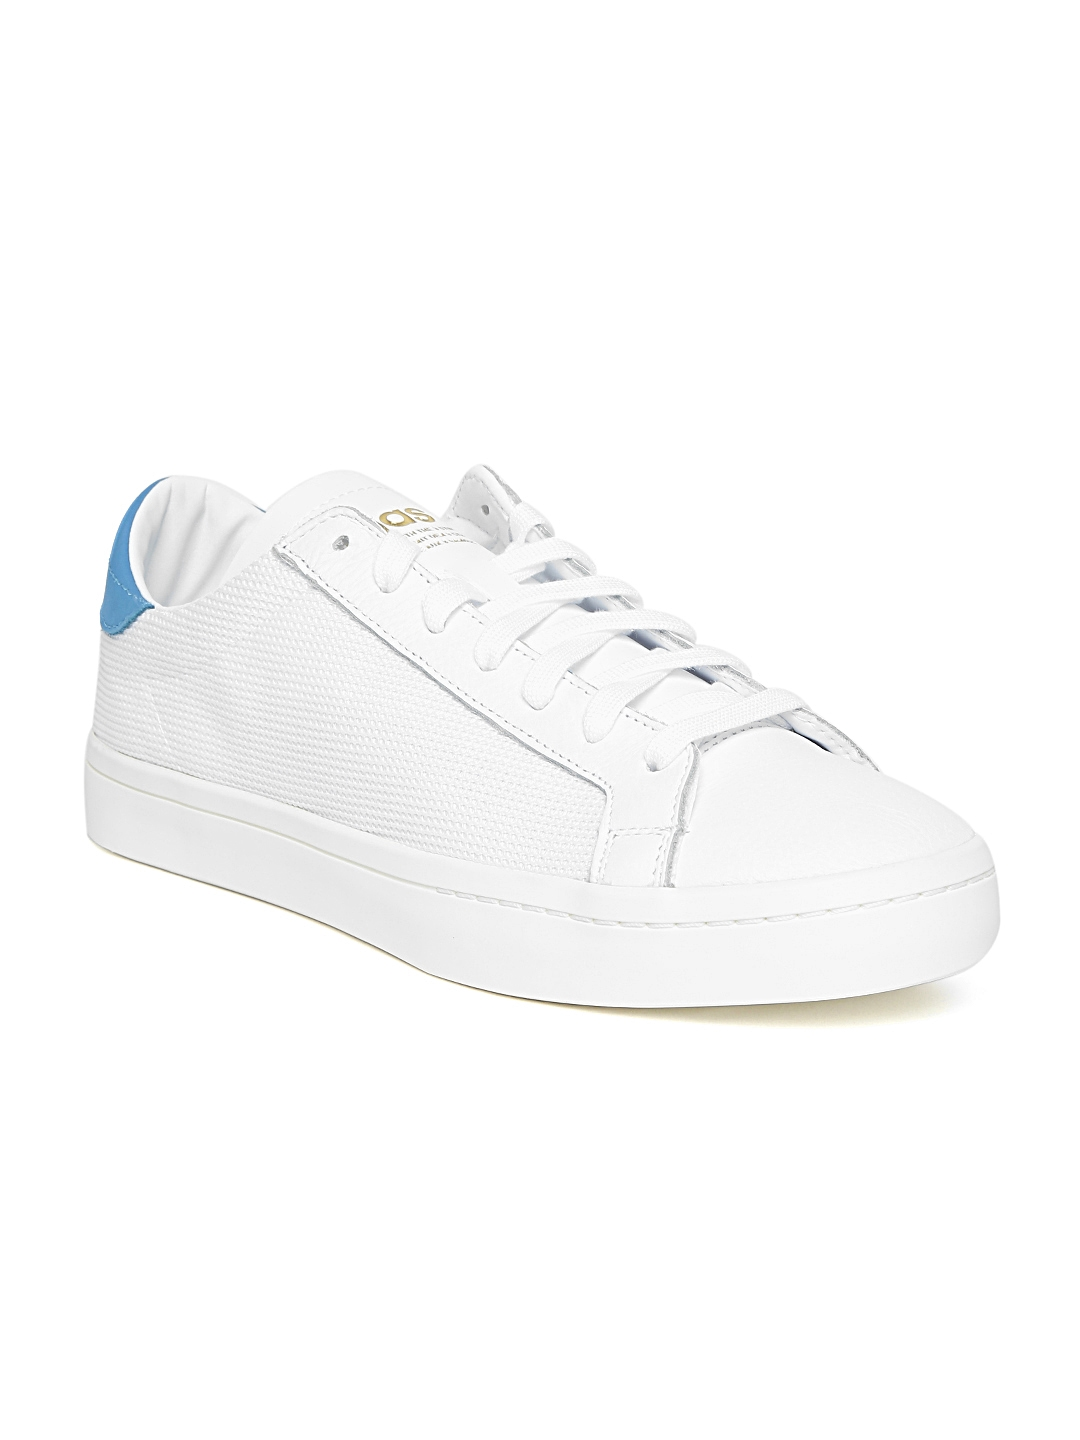 promo code aae27 921dd ADIDAS Originals Men White Court Vantage Sneakers